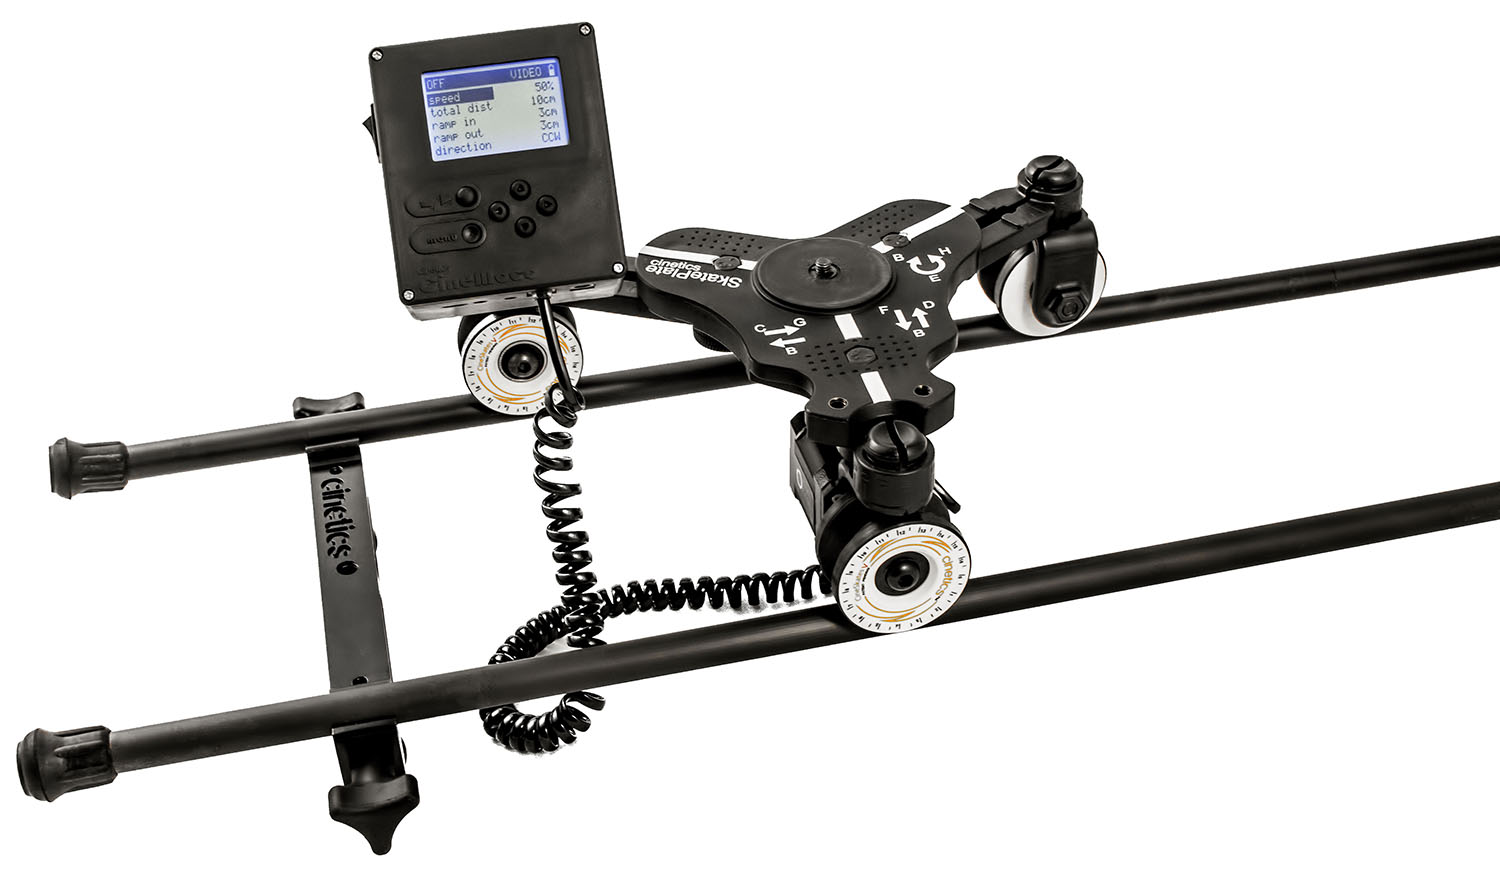 18 sliders compared which is the best travel camera Motorized video slider